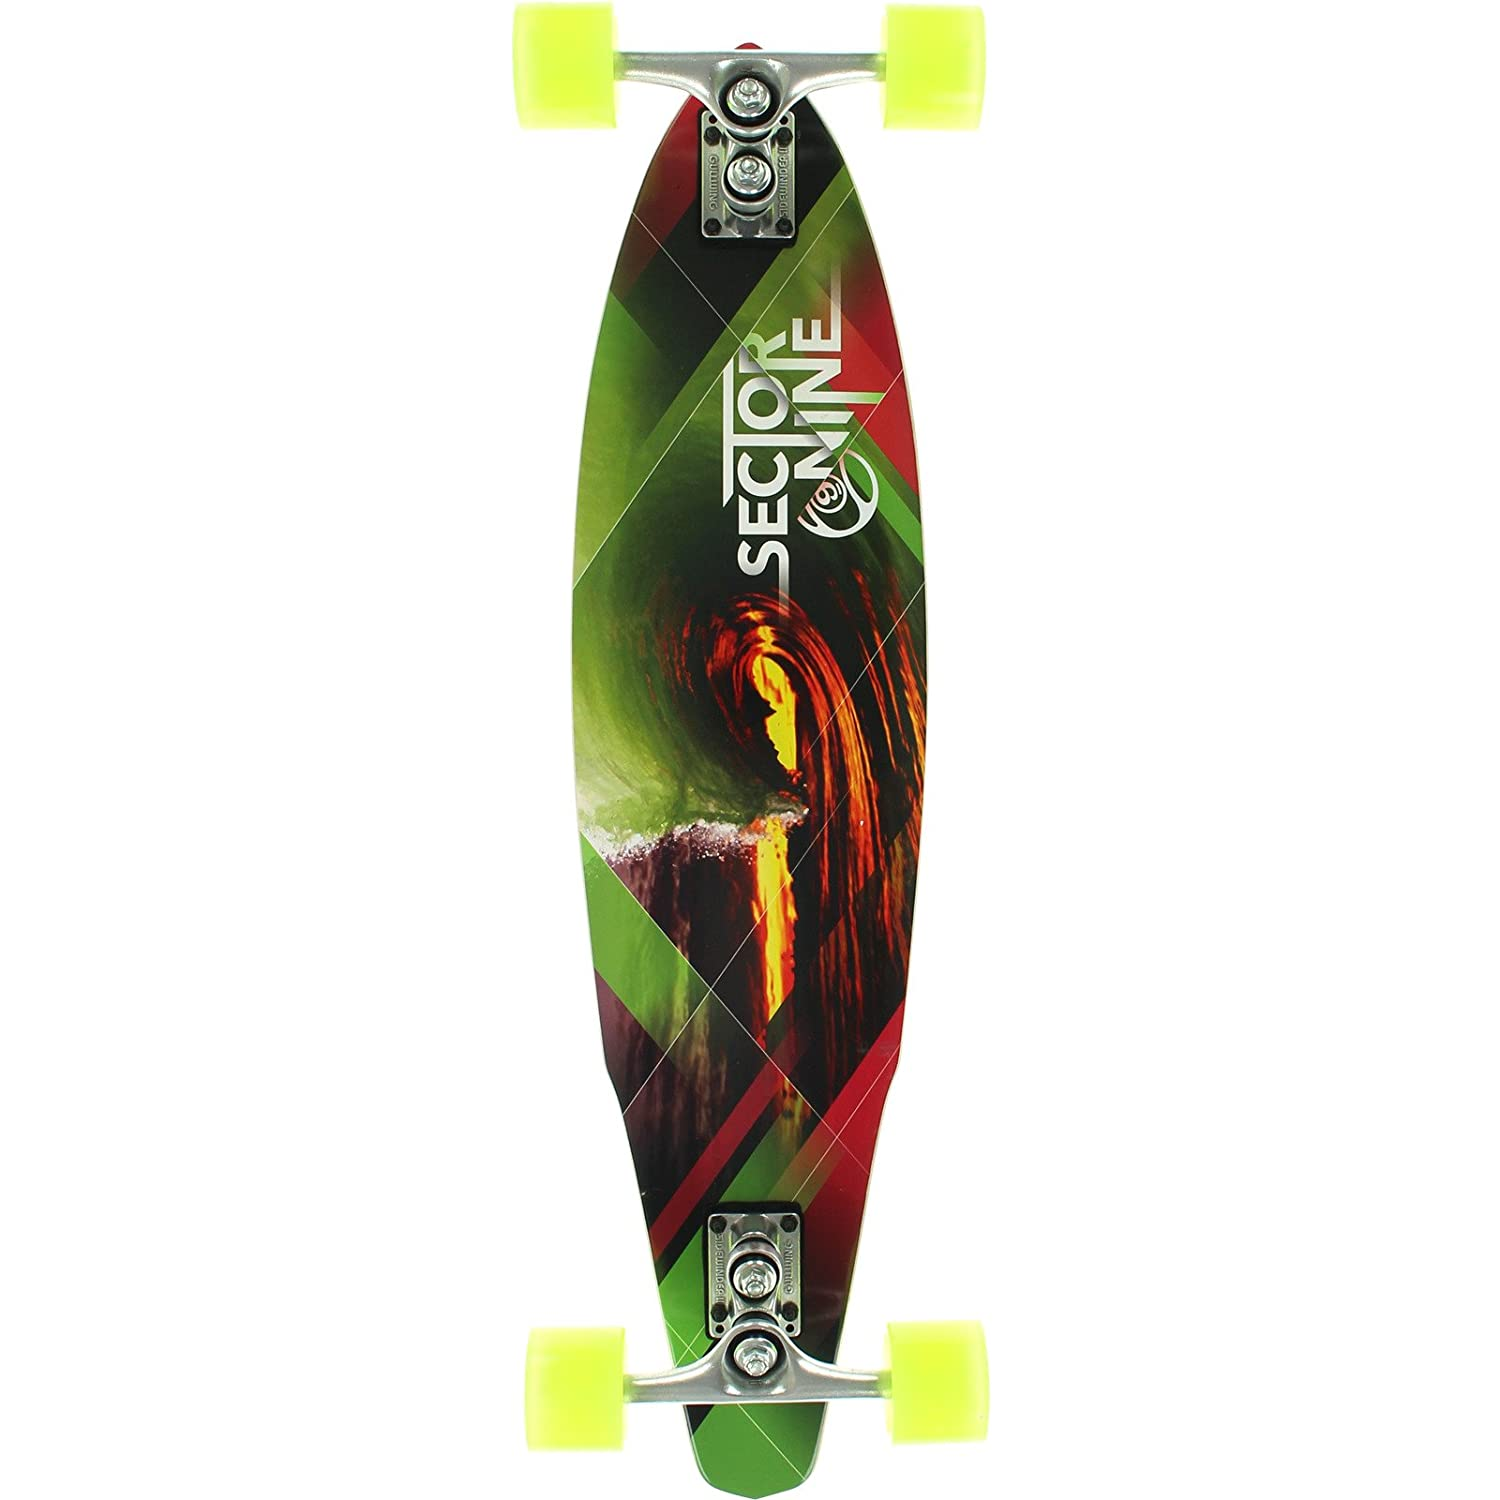 大割引 Sector 9 Revolver Red Green 9/ - Red Complete Skateboard - 9.12 x 37.5 by Sector 9 B017IRLA6U, 神戸クリスマスギャラリー:d4aa37a3 --- a0267596.xsph.ru